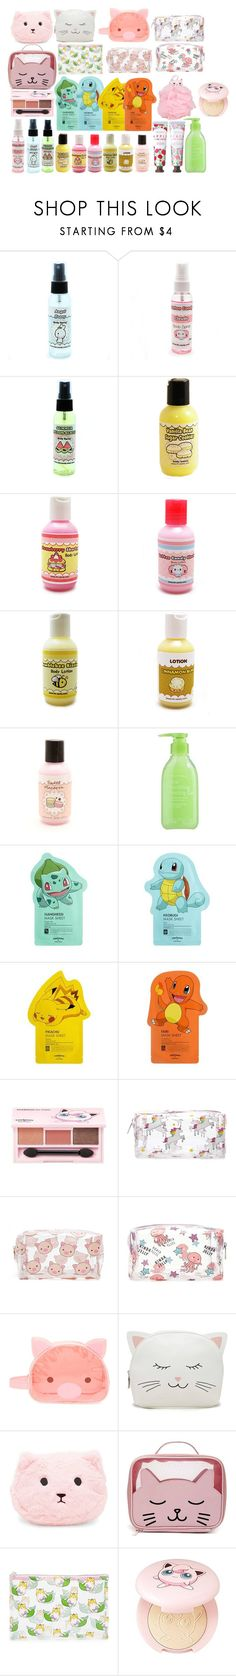 """""""0637. cutie beauty II"""" by hiimmichelle ❤ liked on Polyvore featuring beauty, Cotton Candy, Tony Moly, TONYMOLY, Forever 21 and Etude House"""